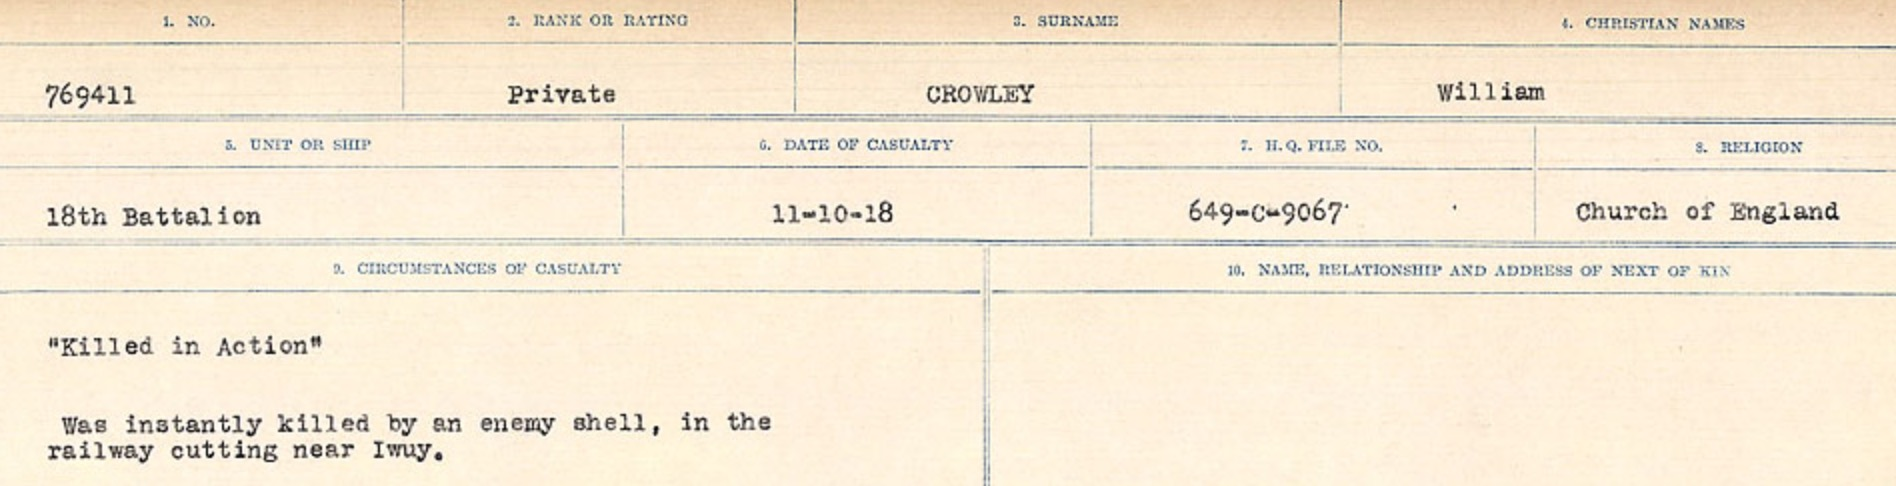 Circumstances of death registers– Source: Library and Archives Canada. CIRCUMSTANCES OF DEATH REGISTERS, FIRST WORLD WAR Surnames: Crossley to Cyrs. Microform Sequence 25; Volume Number 31829_B016734. Reference RG150, 1992-93/314, 169. Page 165 of 890.